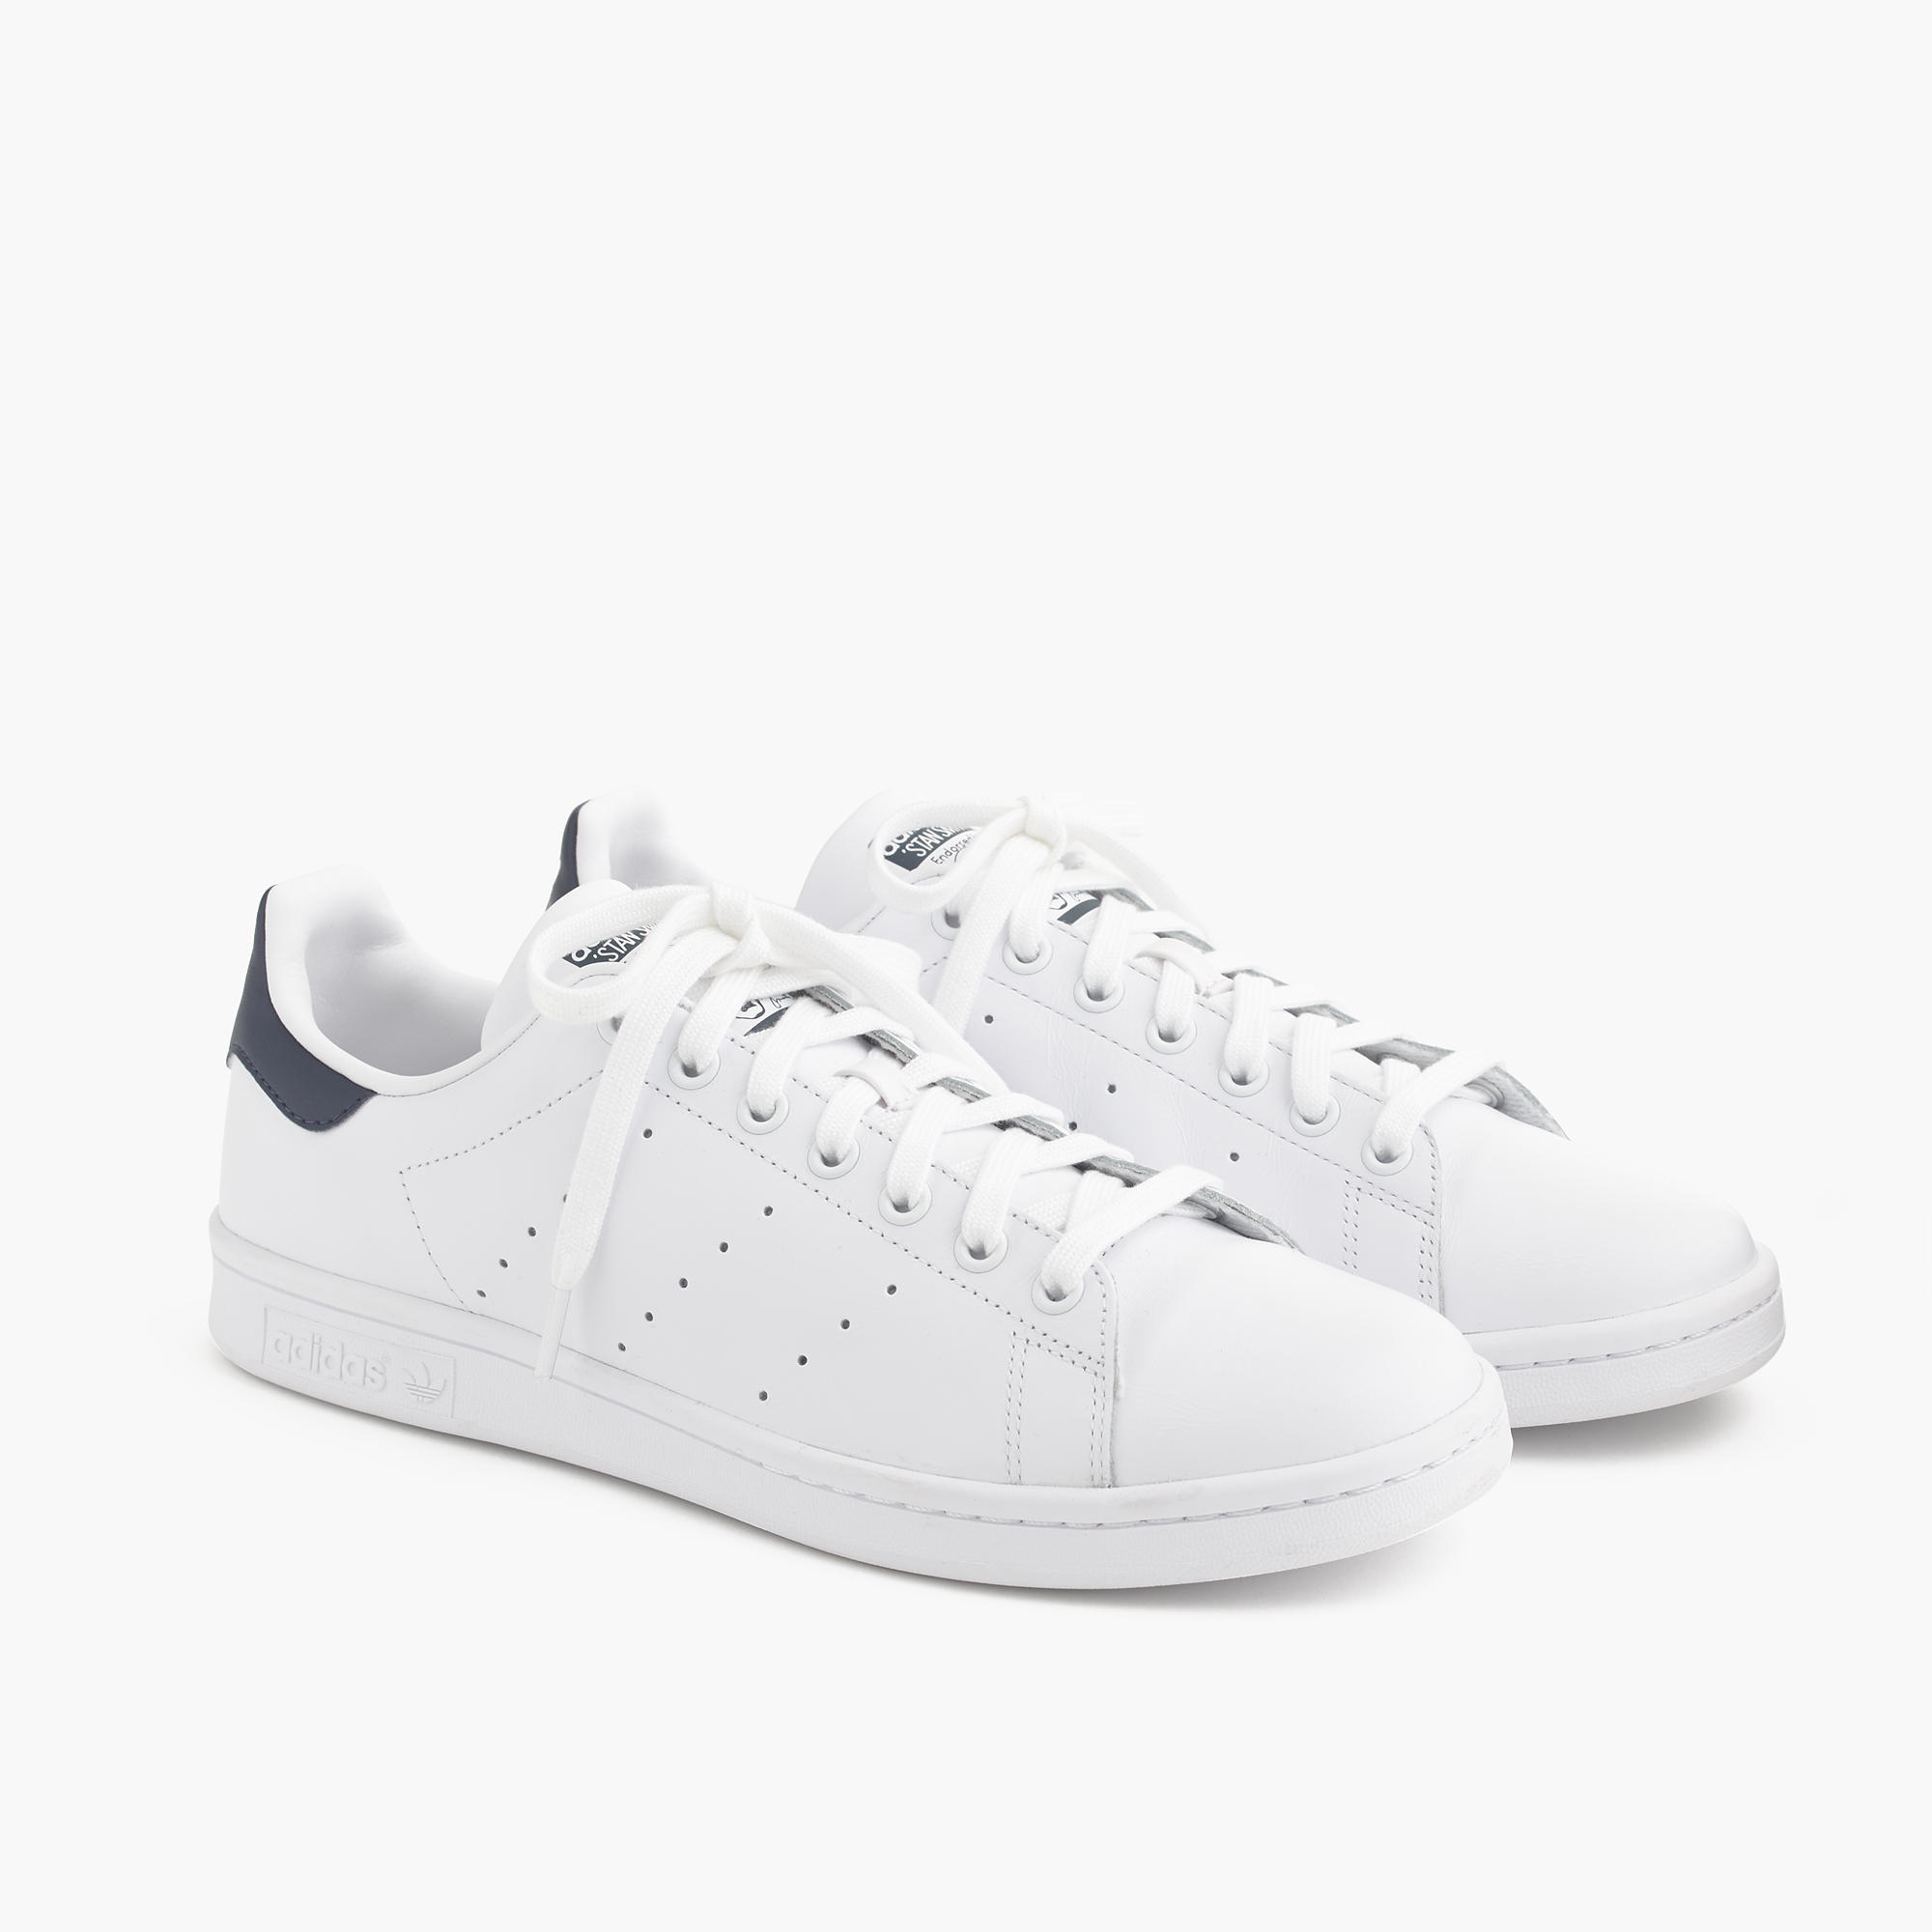 adidas Stan Smith CF Ftw White/ Ftw White/ Green Footshop